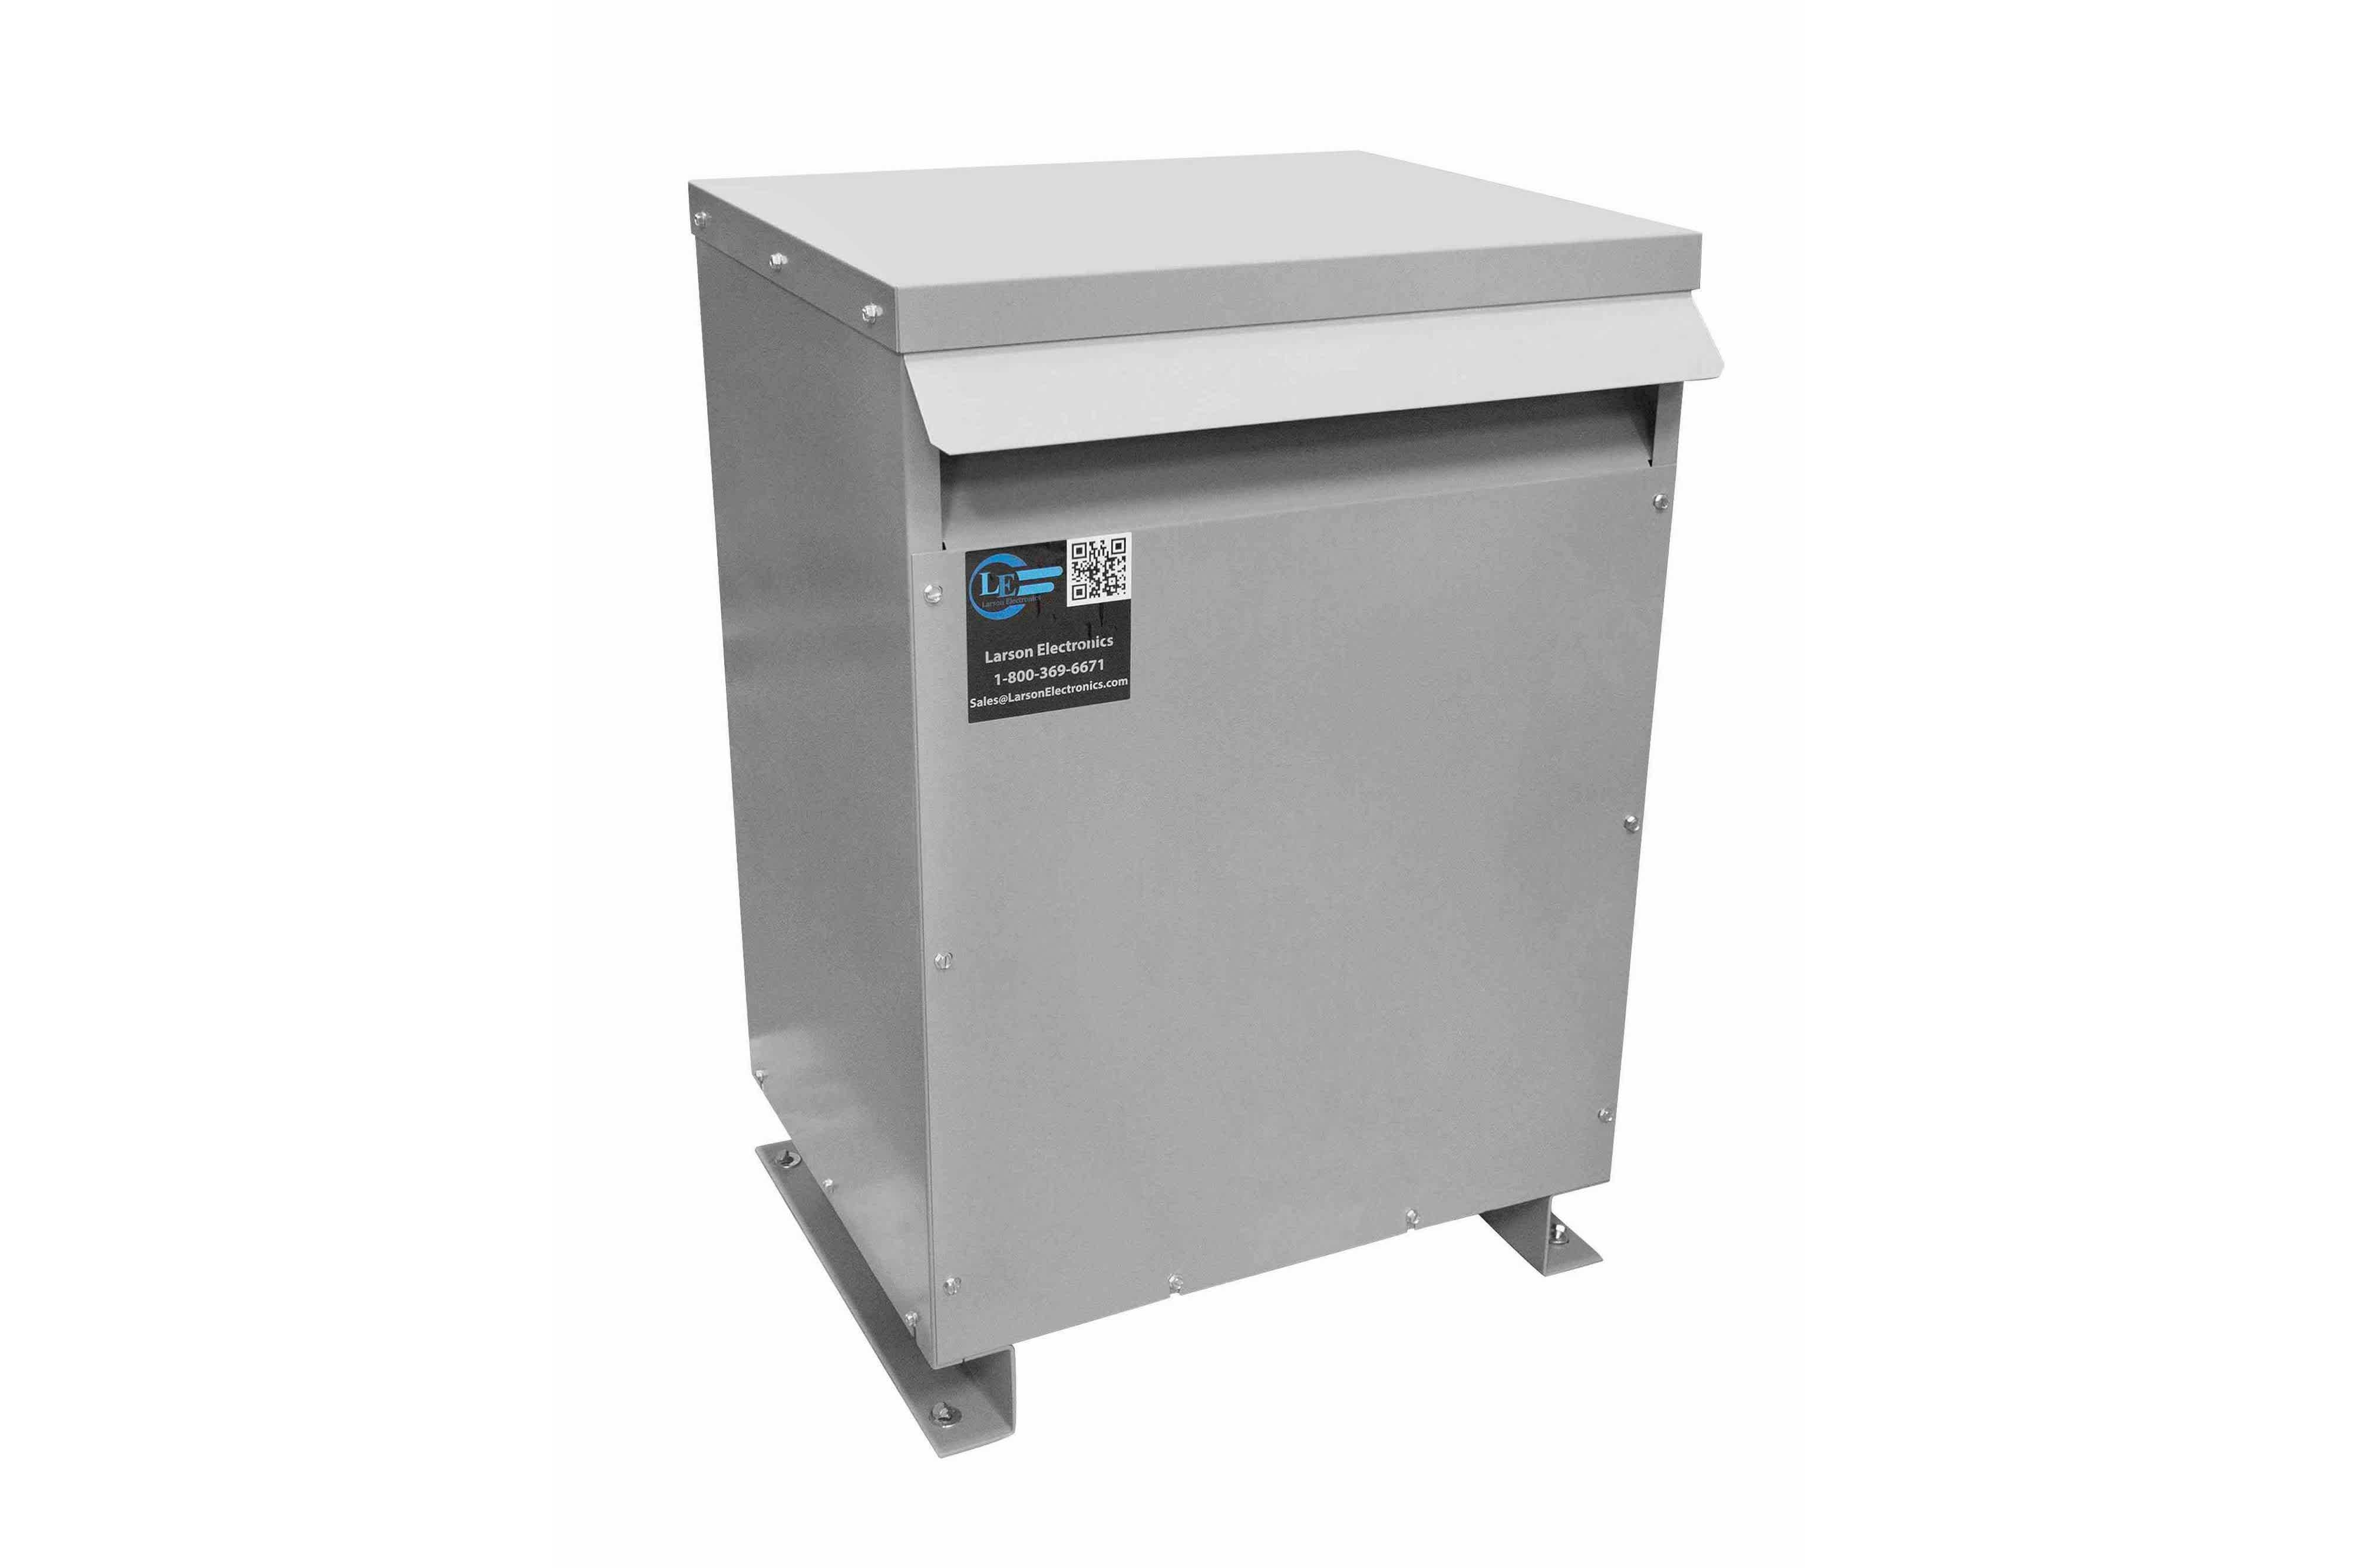 400 kVA 3PH DOE Transformer, 400V Delta Primary, 208Y/120 Wye-N Secondary, N3R, Ventilated, 60 Hz